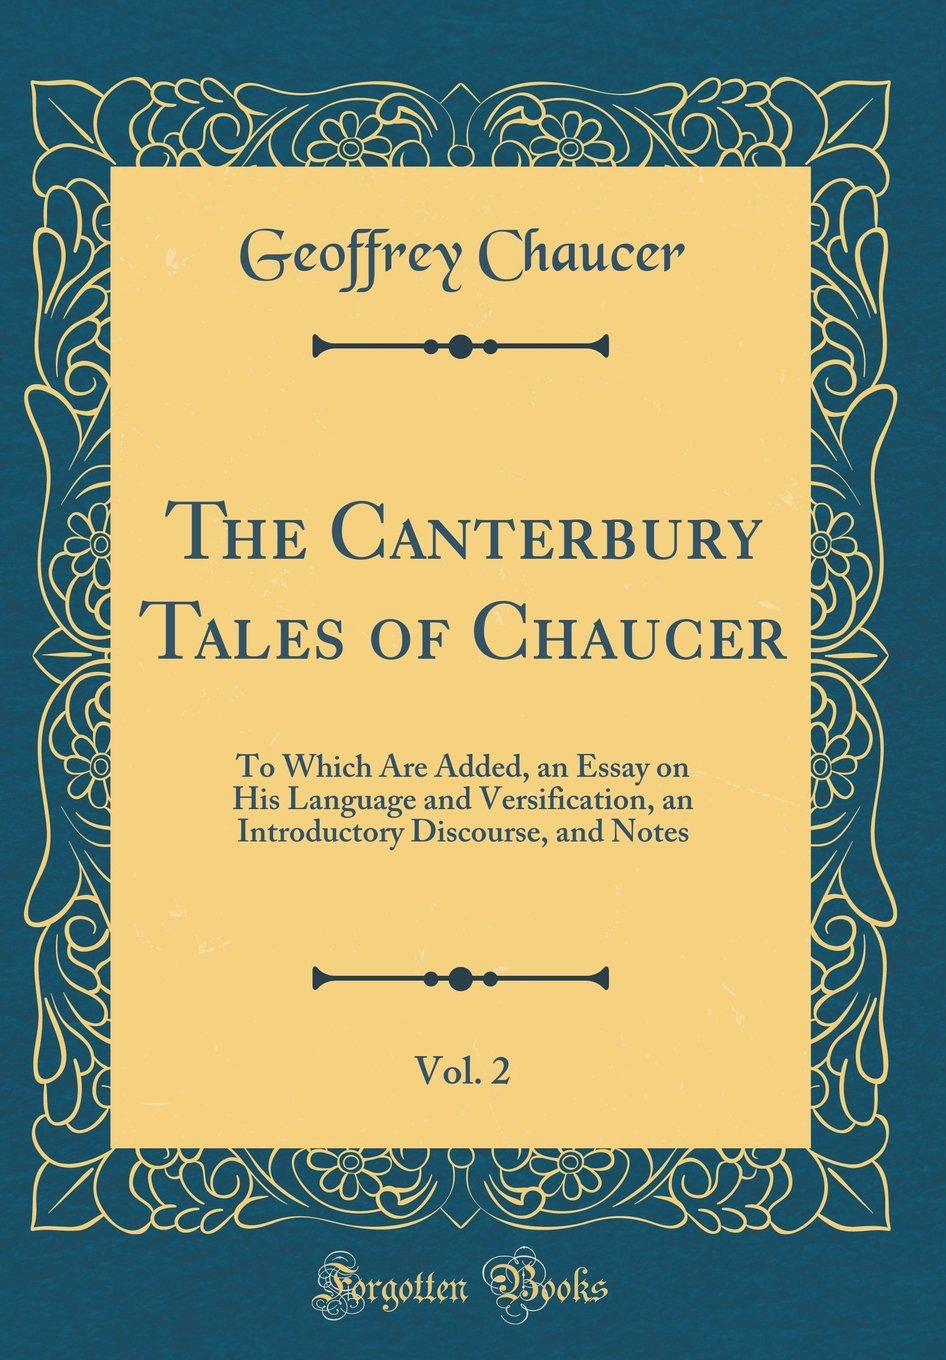 The Canterbury Tales of Chaucer, Vol. 2: To Which Are Added, an Essay on His Language and Versification, an Introductory Discourse, and Notes (Classic Reprint) by Forgotten Books